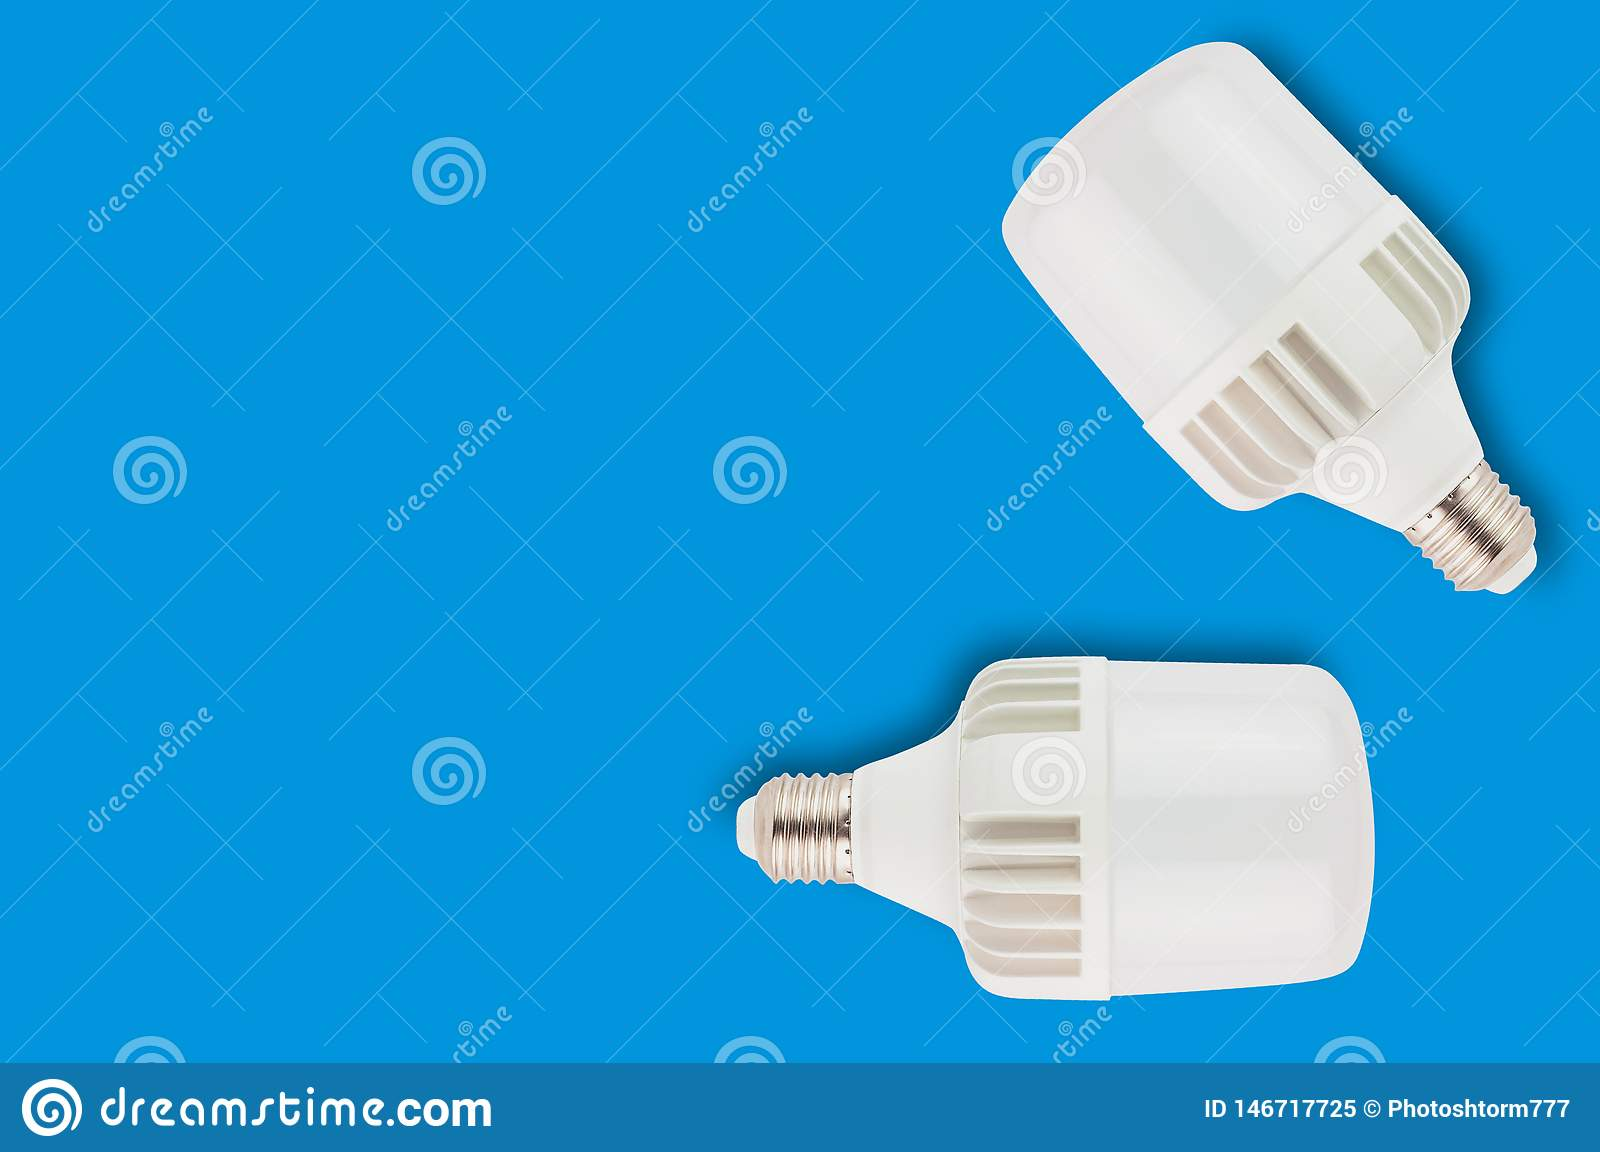 Pair of new plastic led bulbs on blue background with copy space. Saving and economy or green energy concept